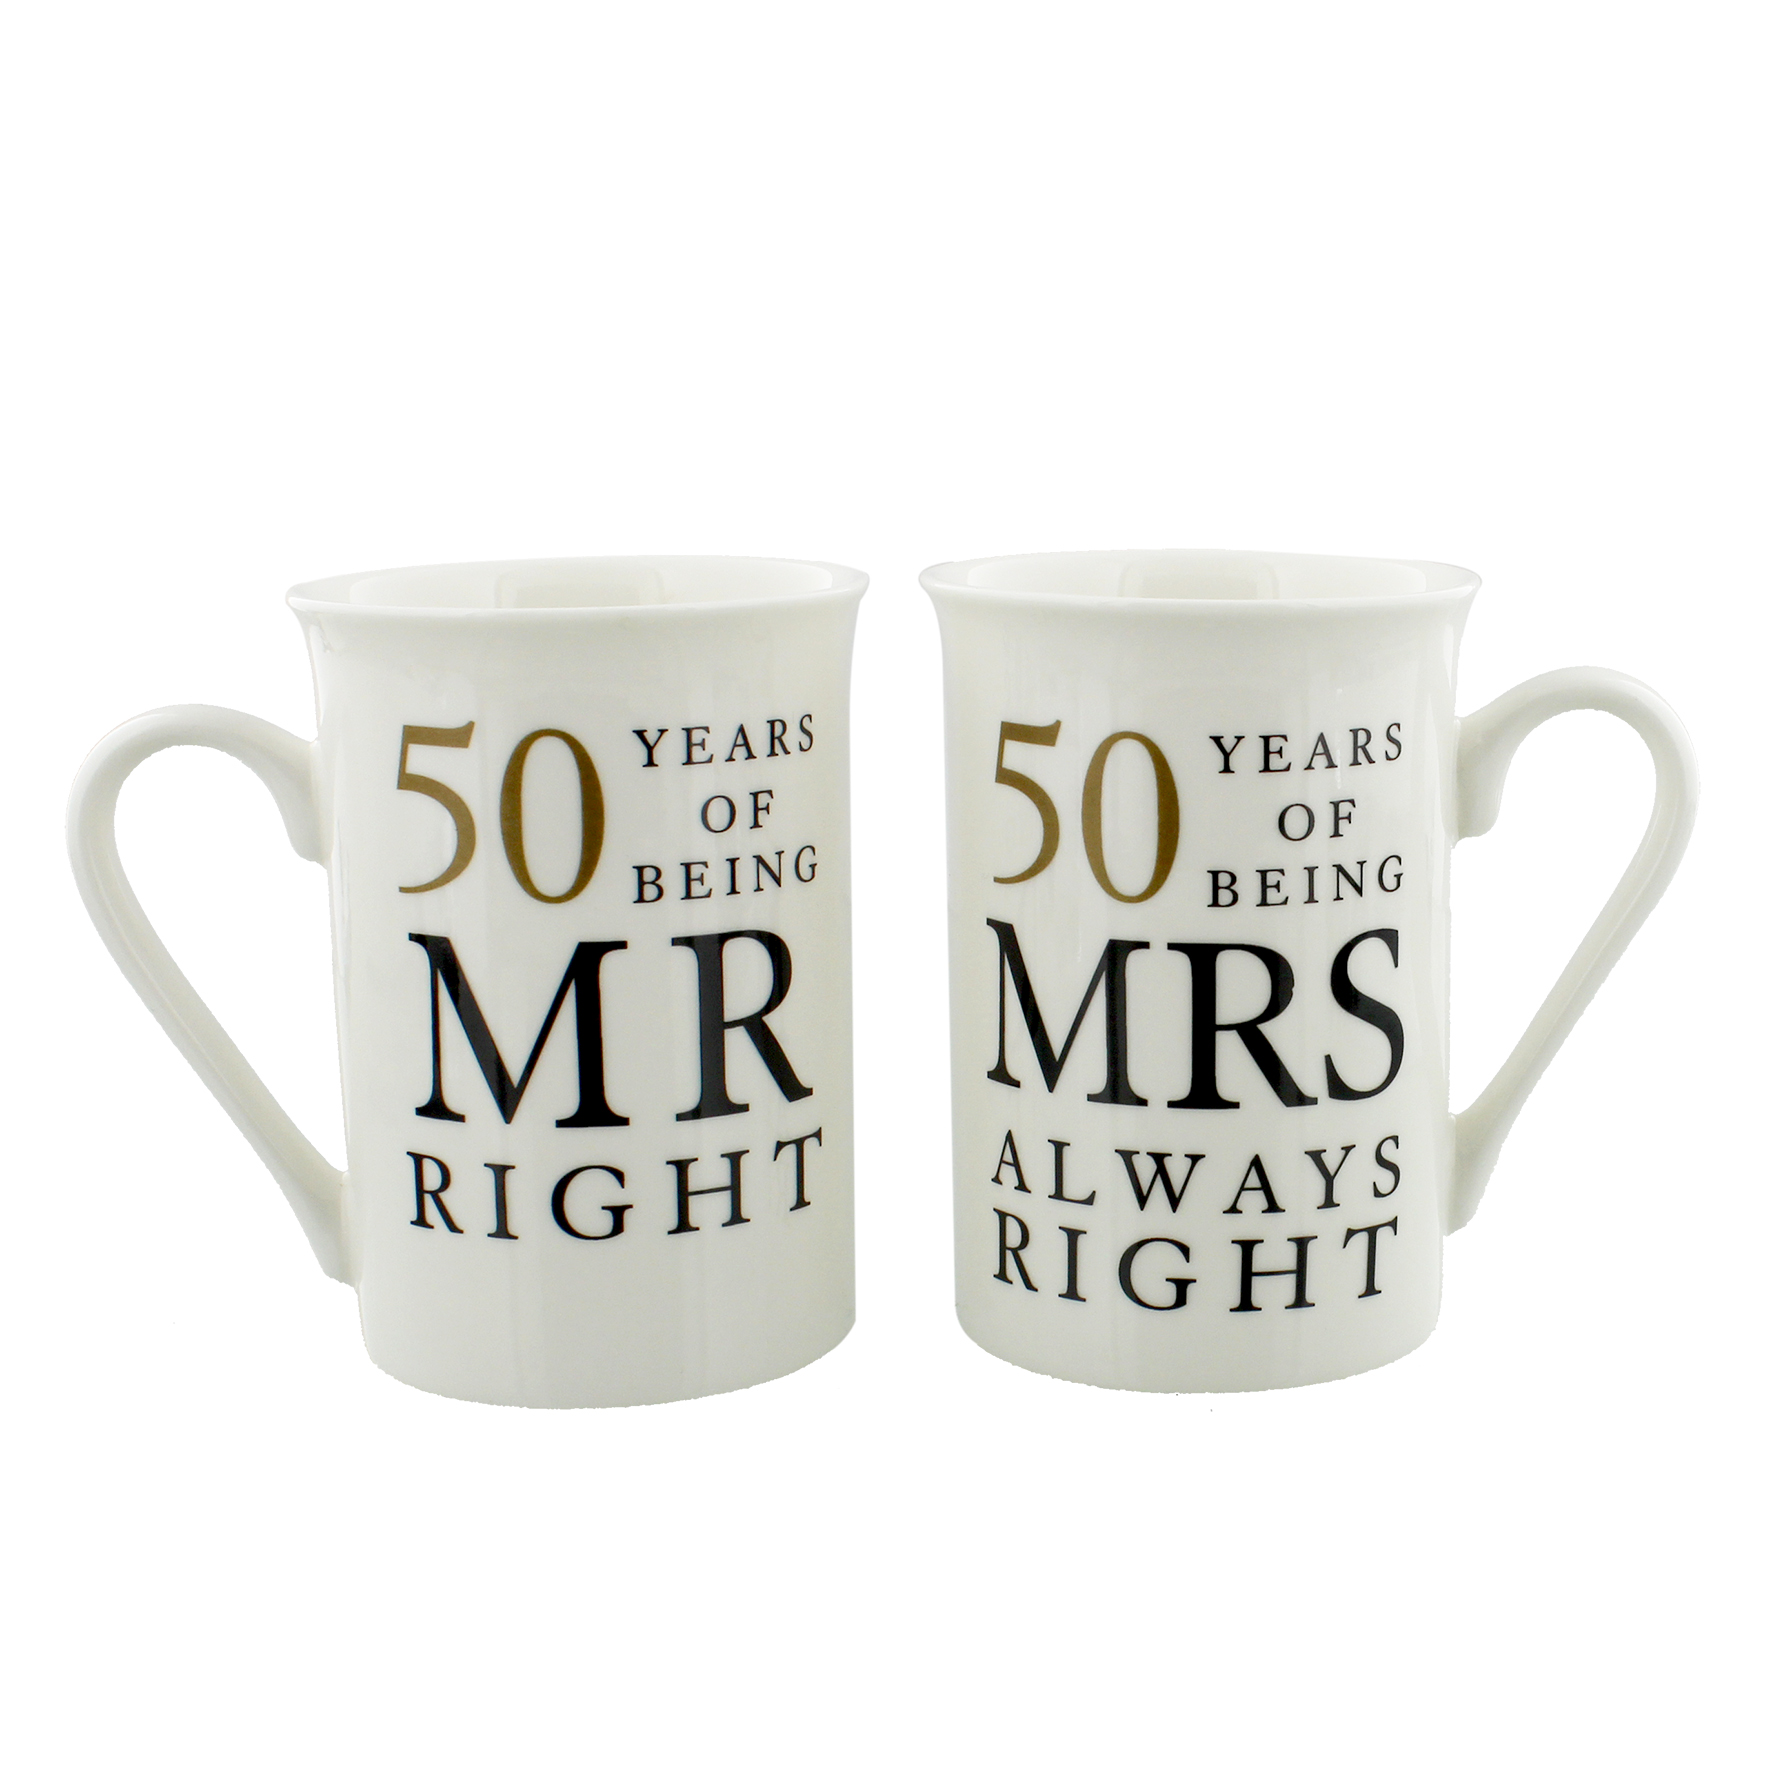 Gift Idea For Wedding Anniversary: 50 Years Mr & Mrs Mugs Amore Mug Set In A Gift Box